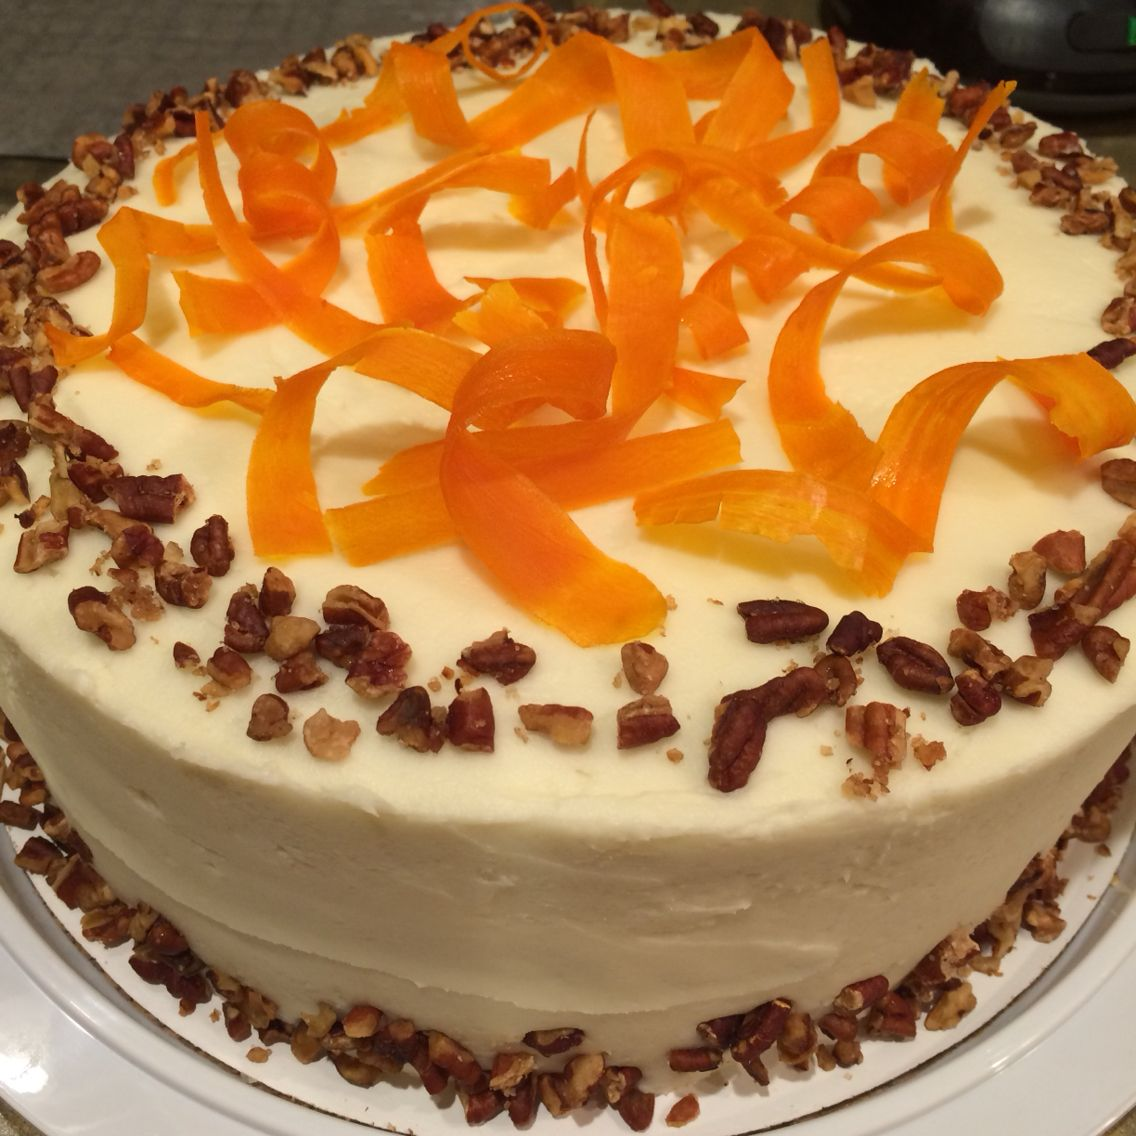 Carrot cake with candied carrot curls with images